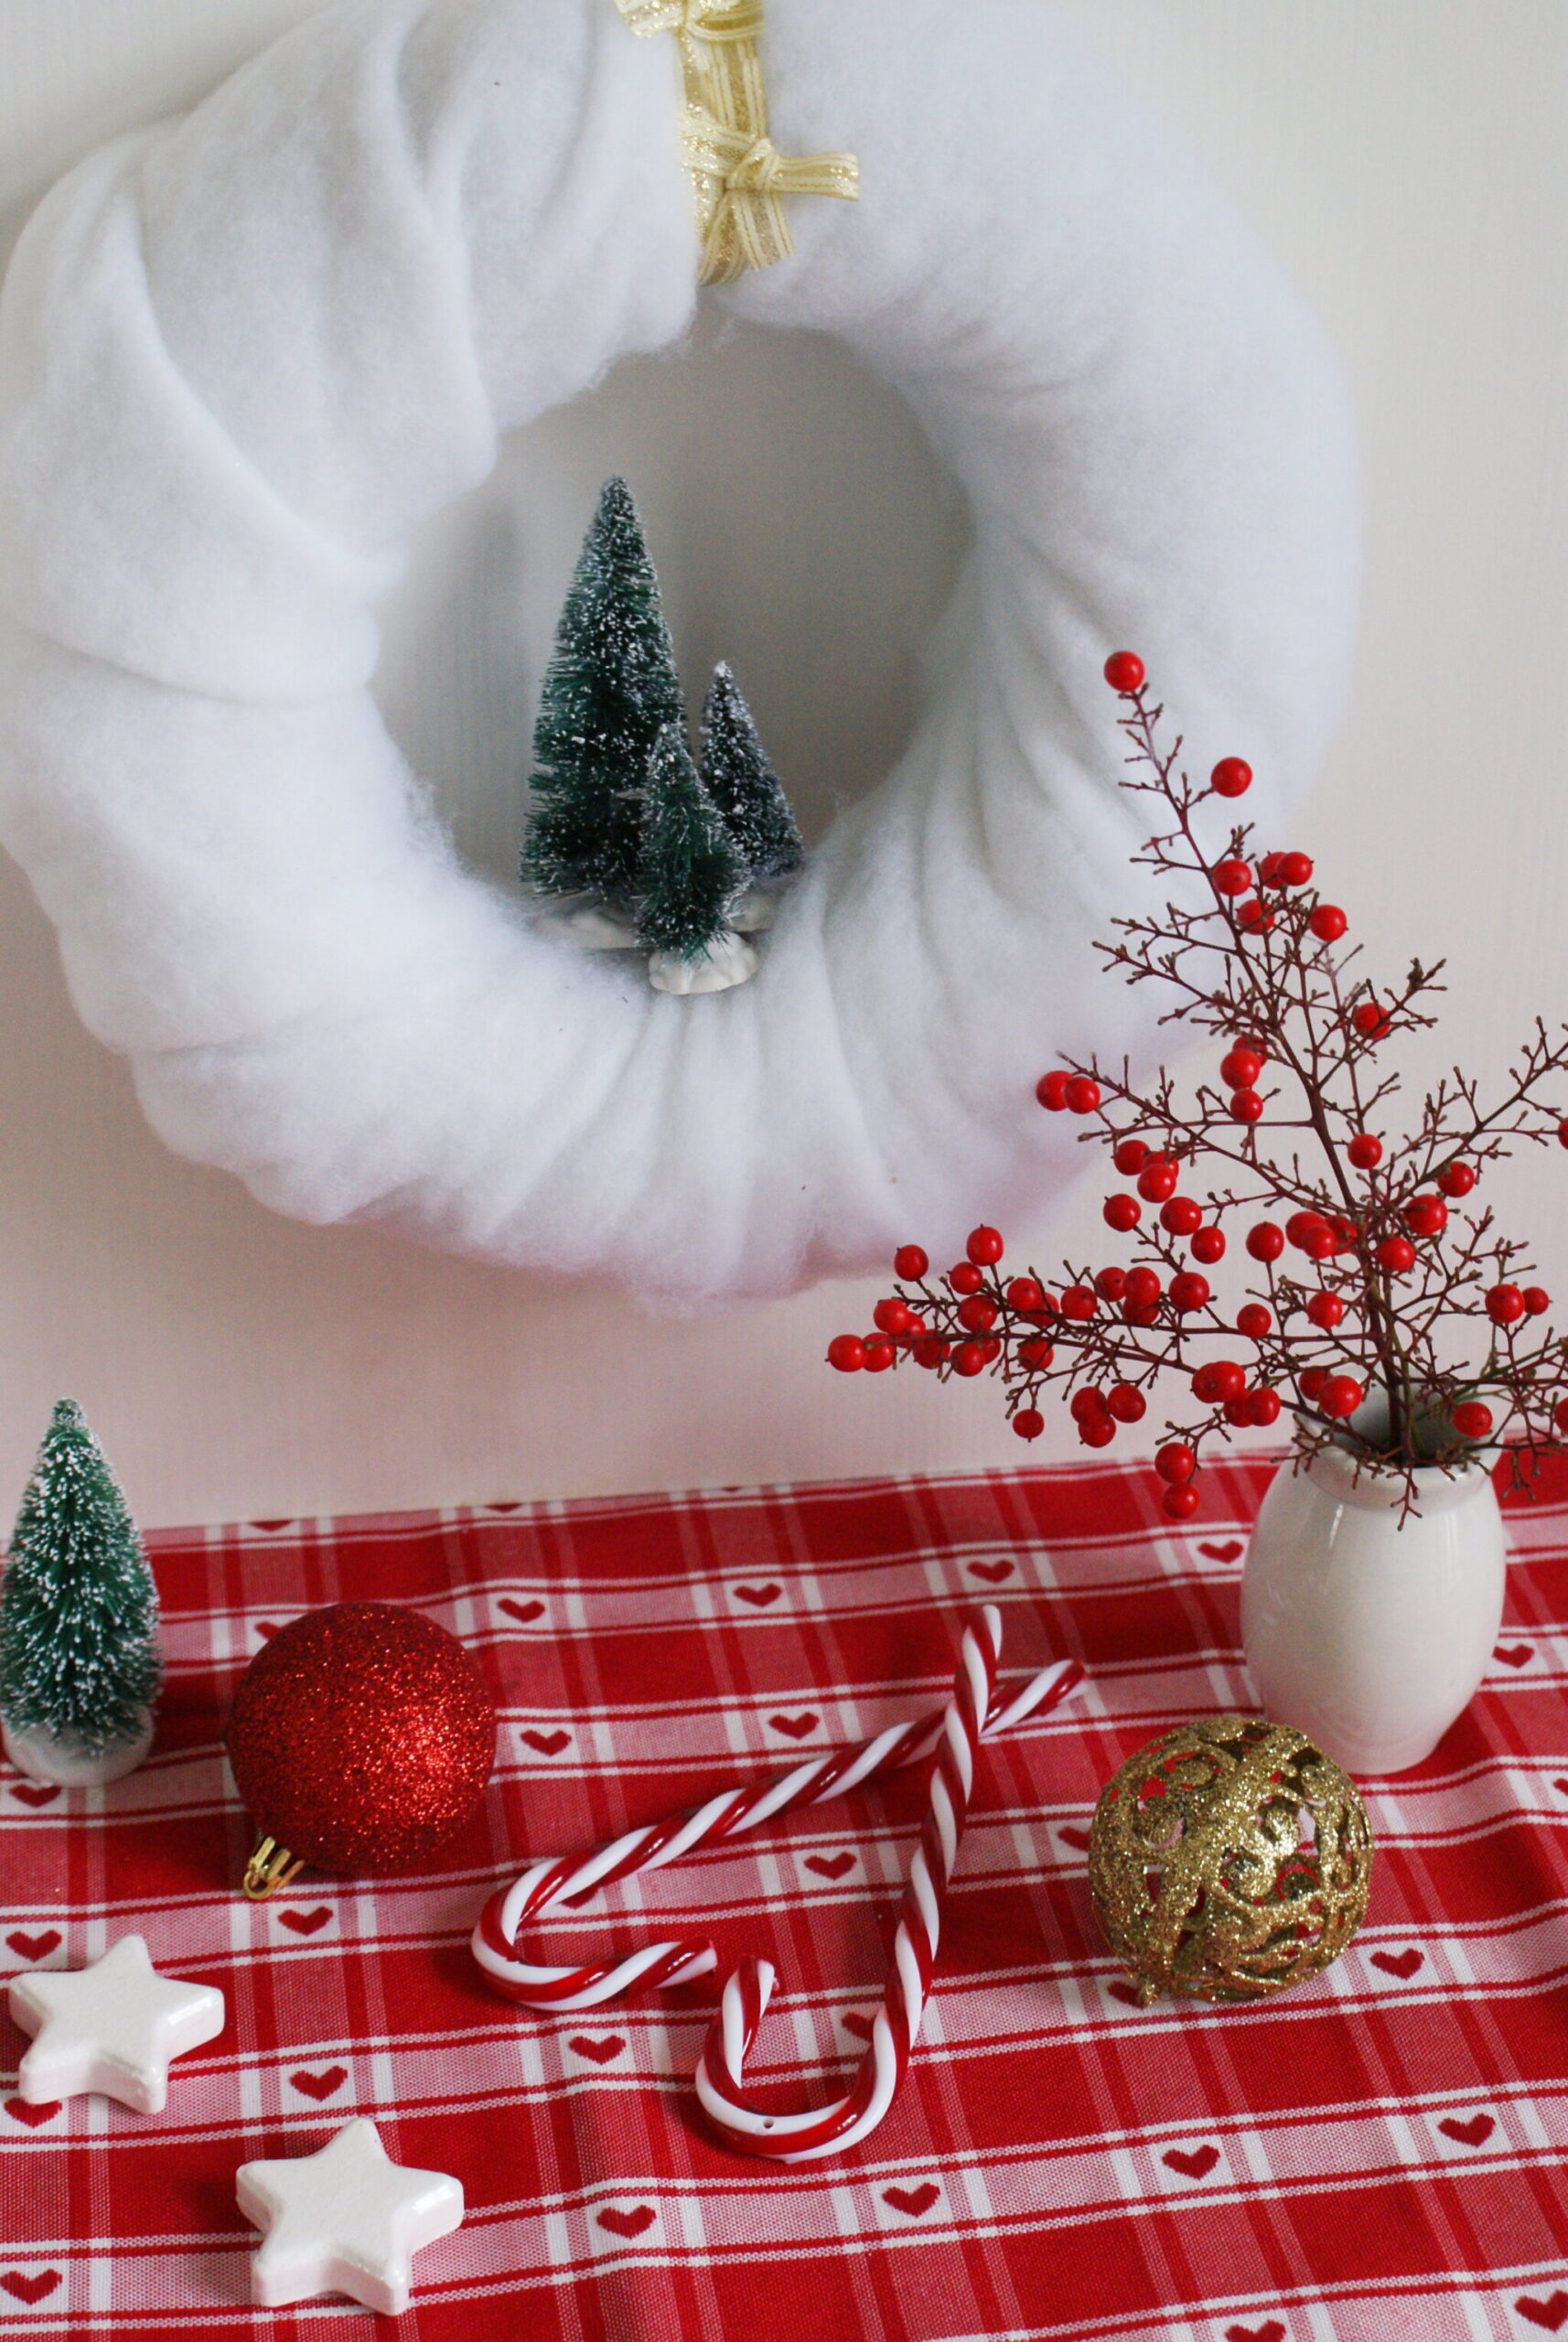 diy cotton snow wreath christmas handmade winter miniature tutorial easy decor idea hanging